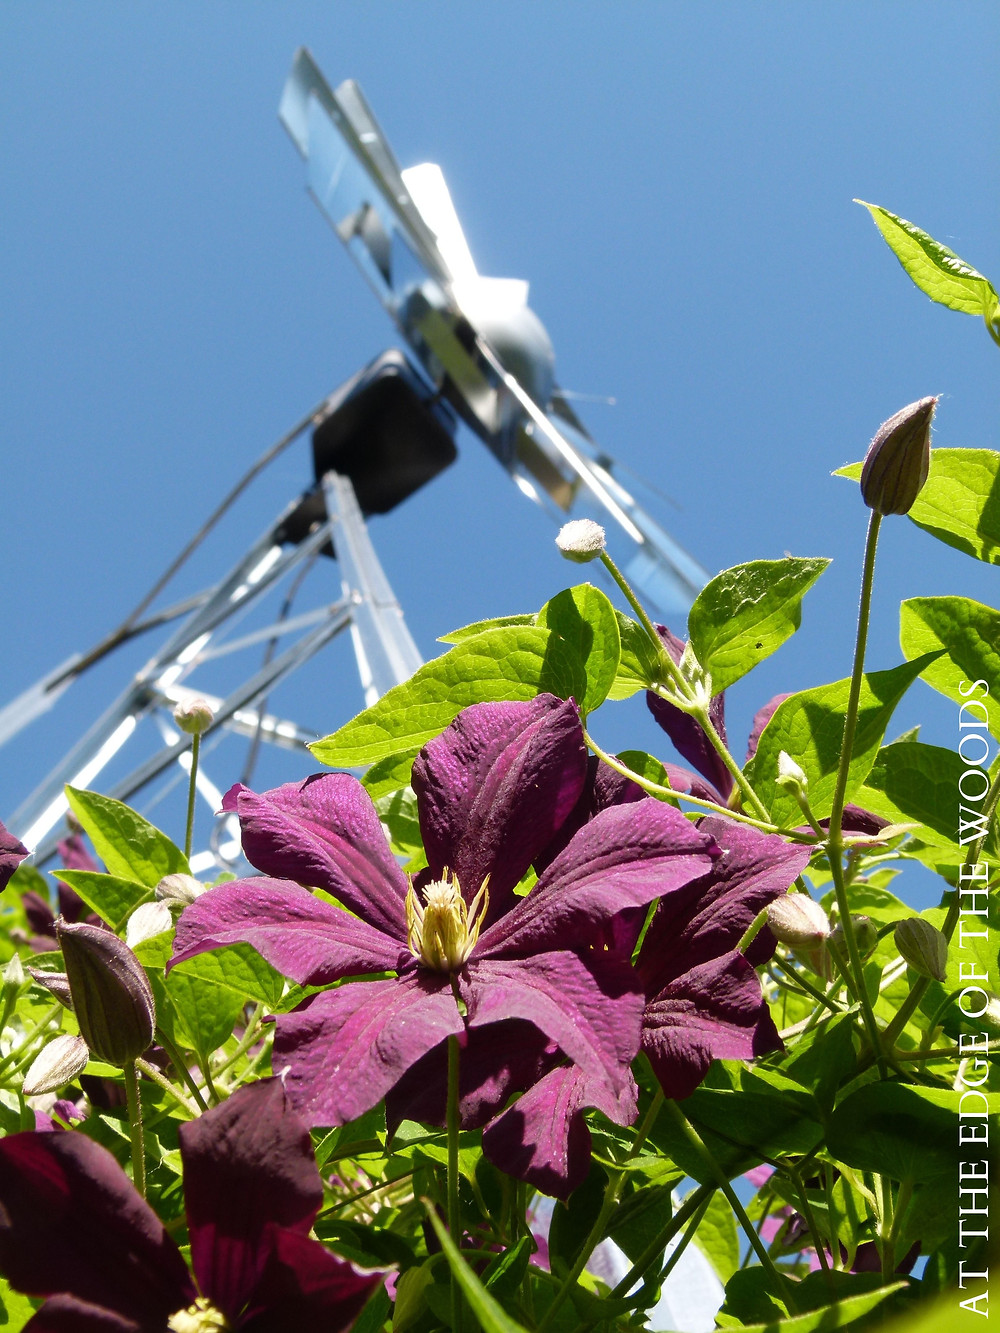 clematis twines its way up the windmill as a trellis